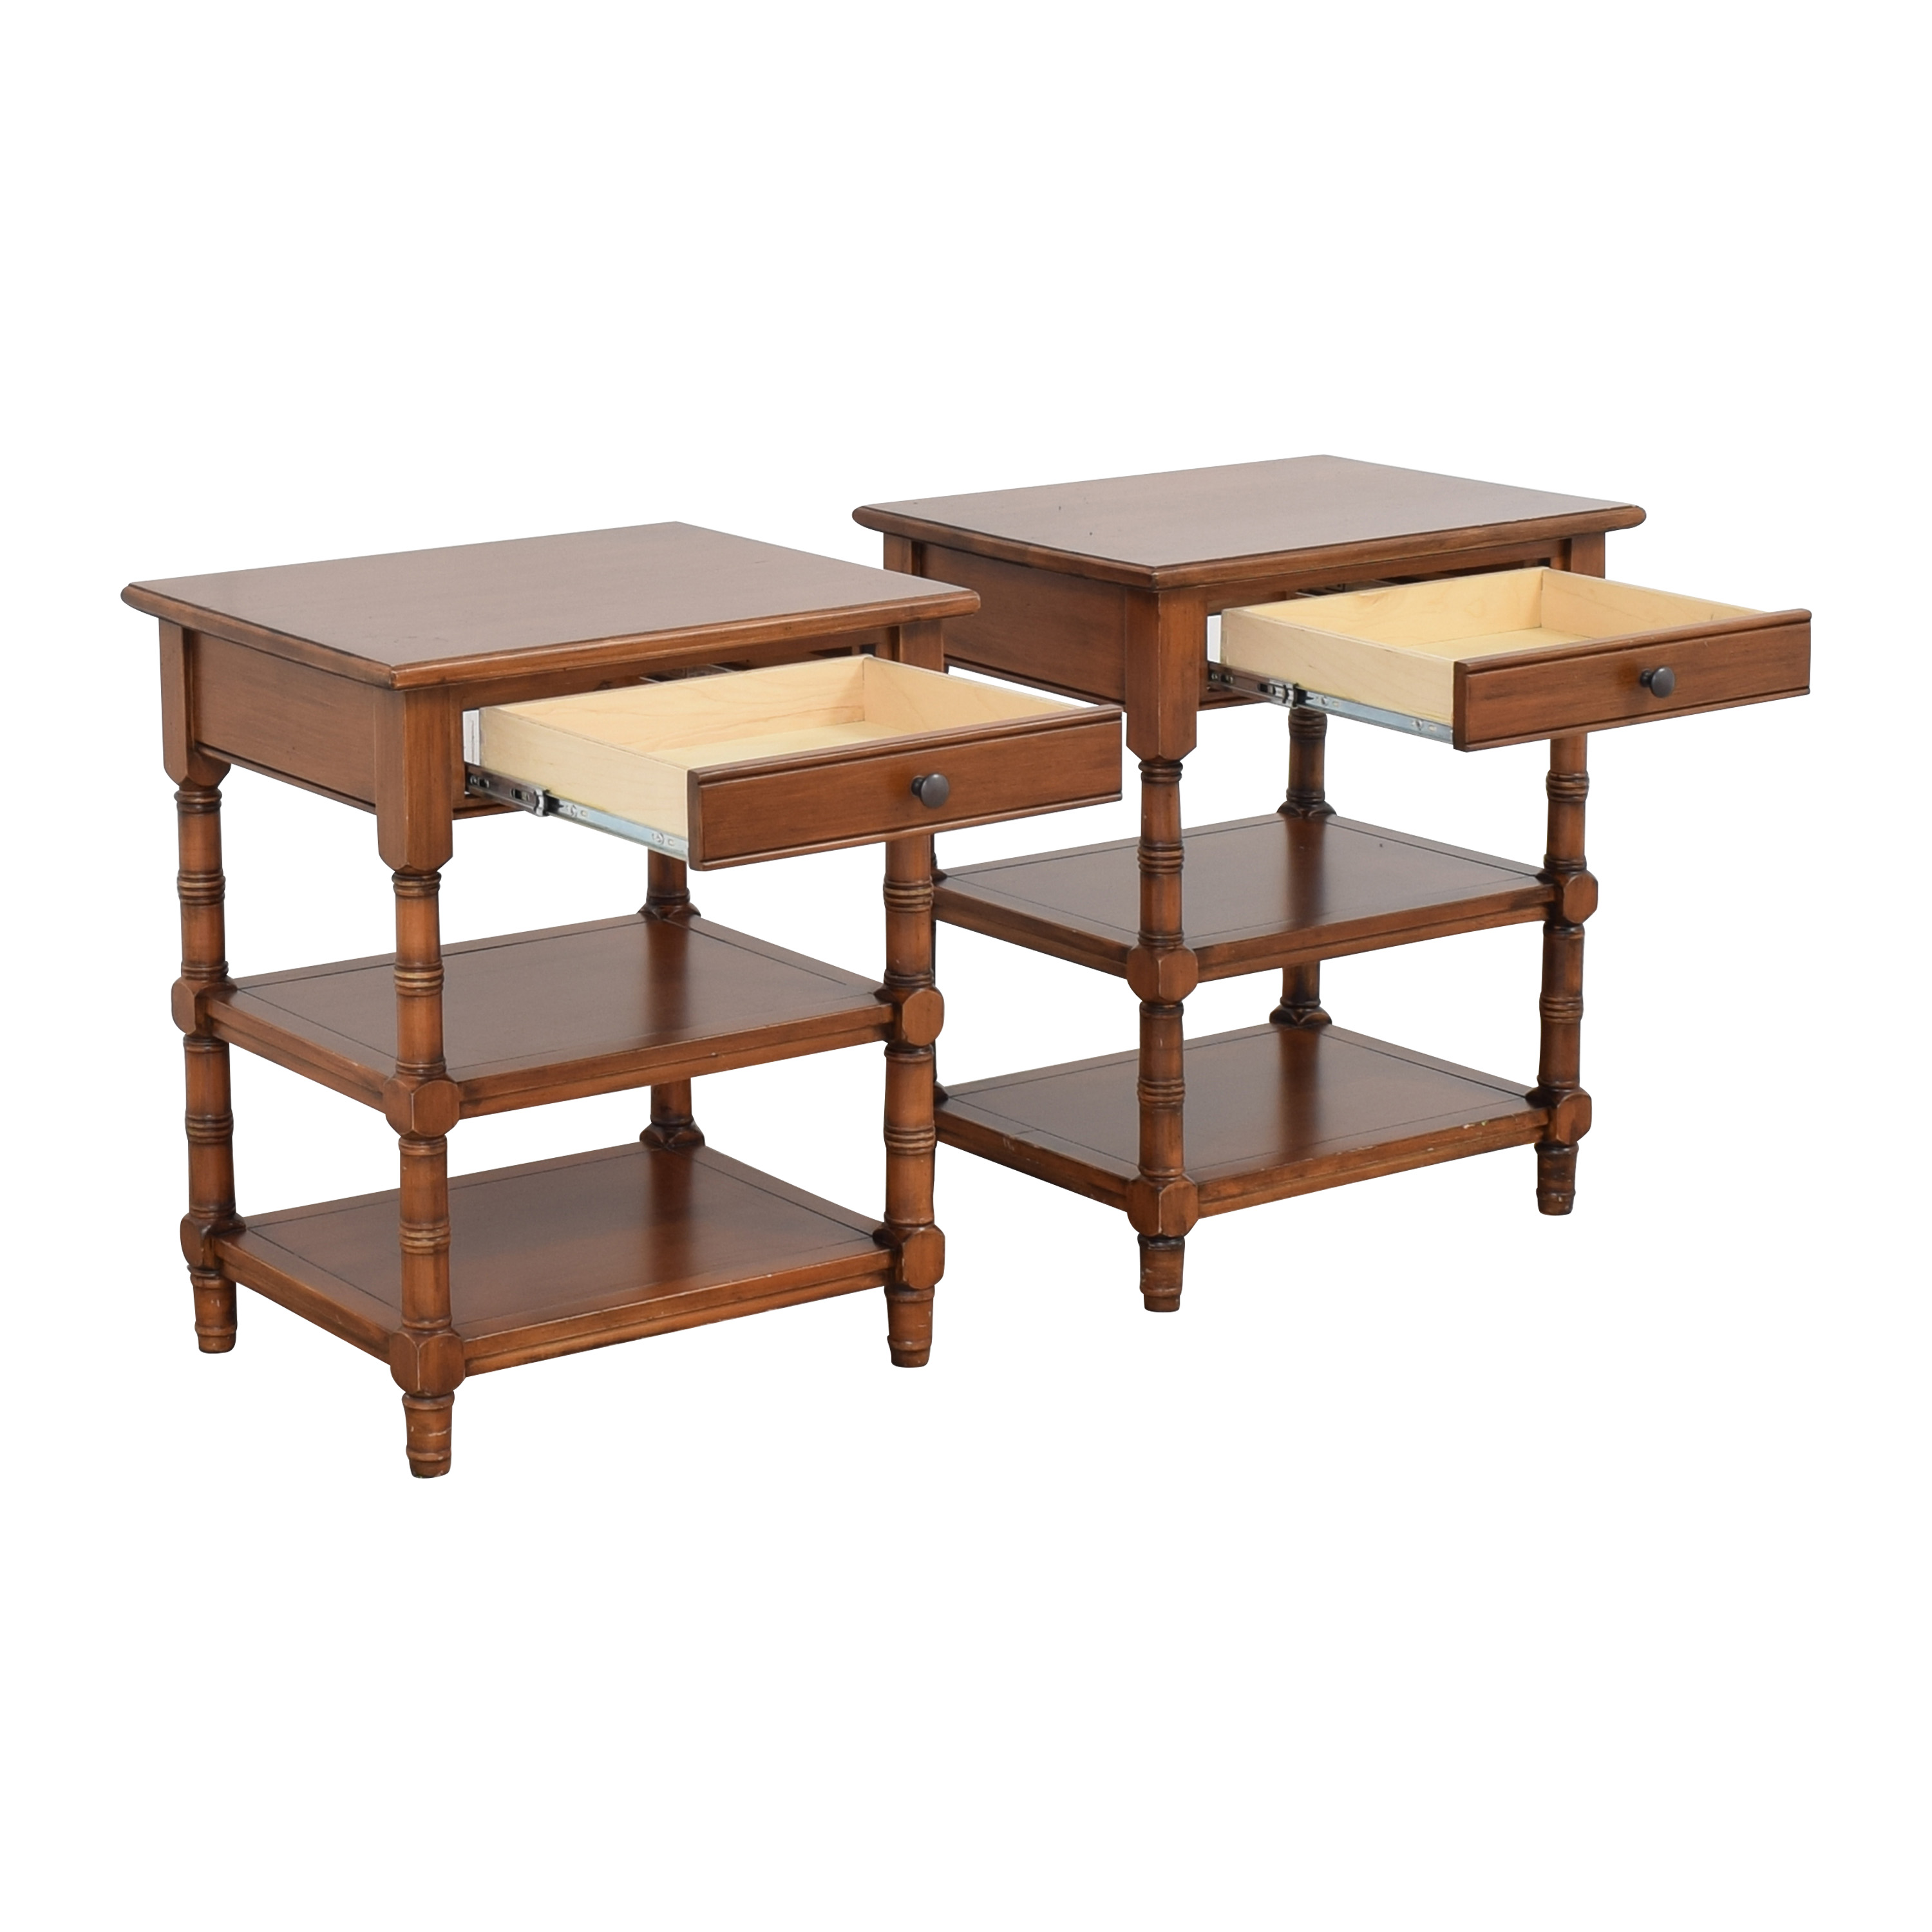 Country Willow Country Willow Nightstands brown